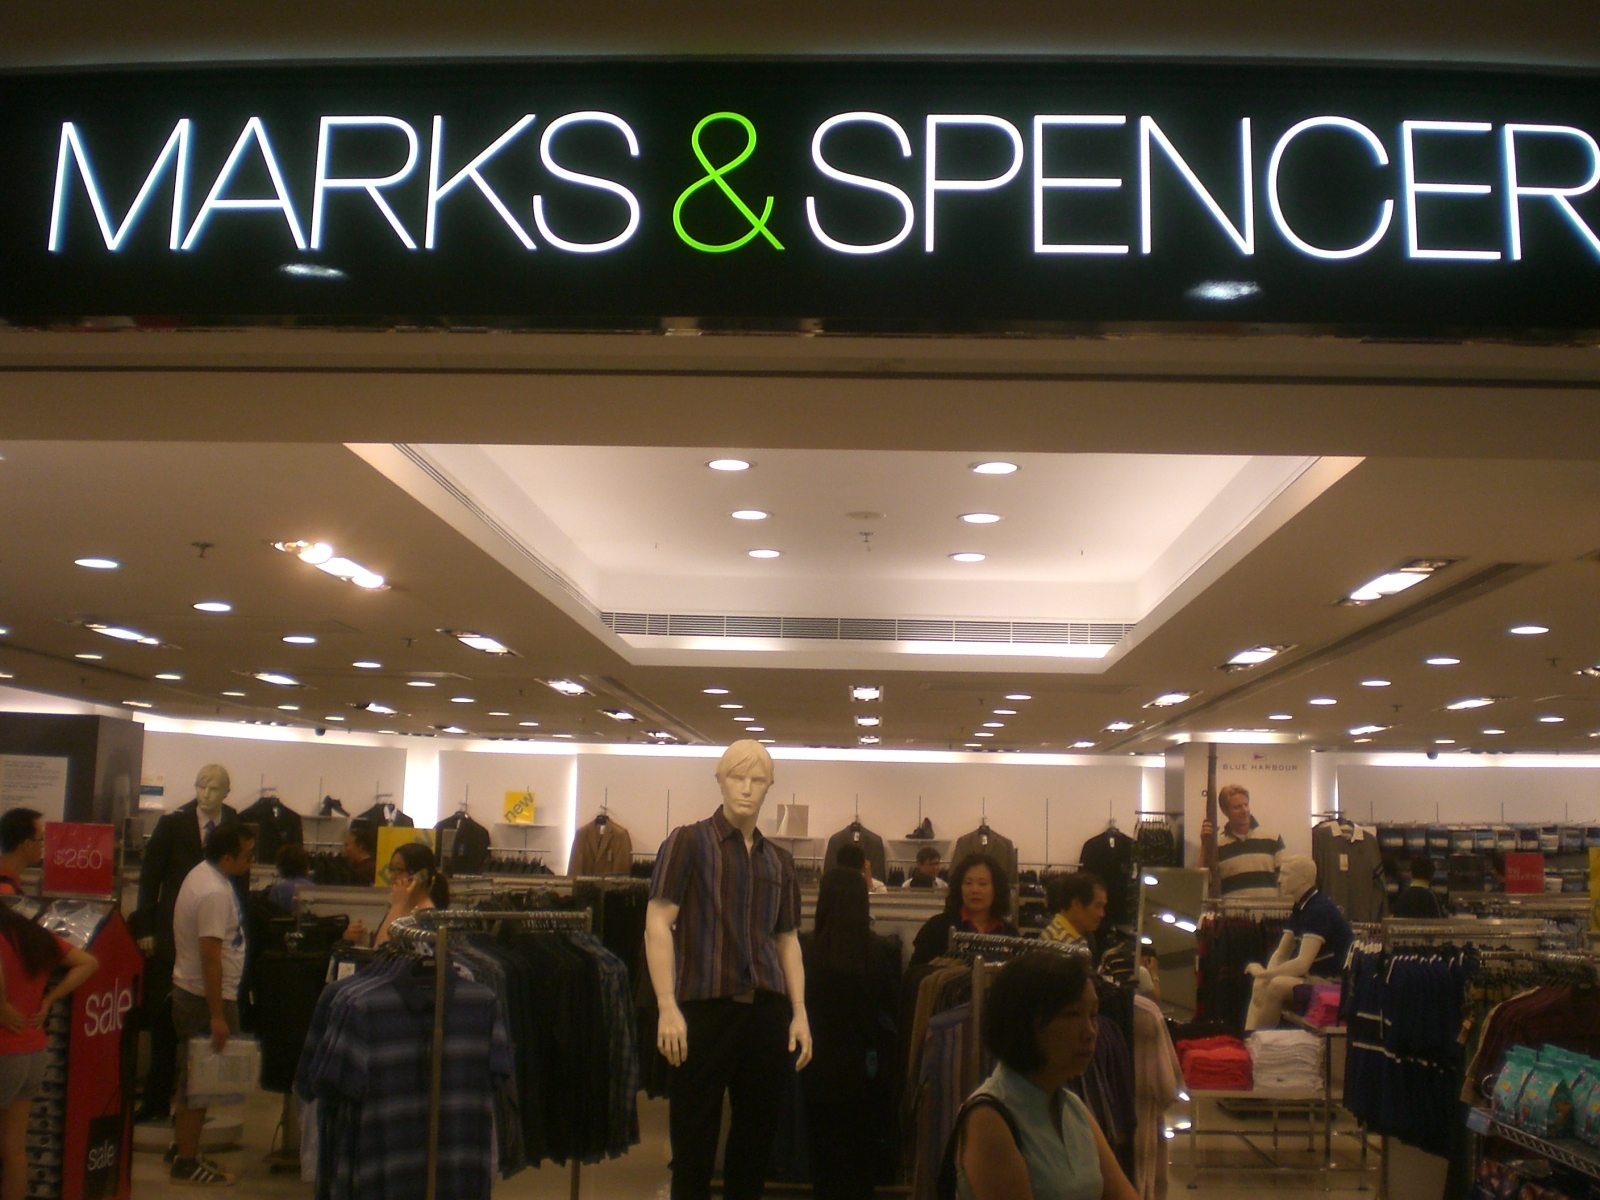 Marks & Spencer turns to biogas to cut carbon emissions